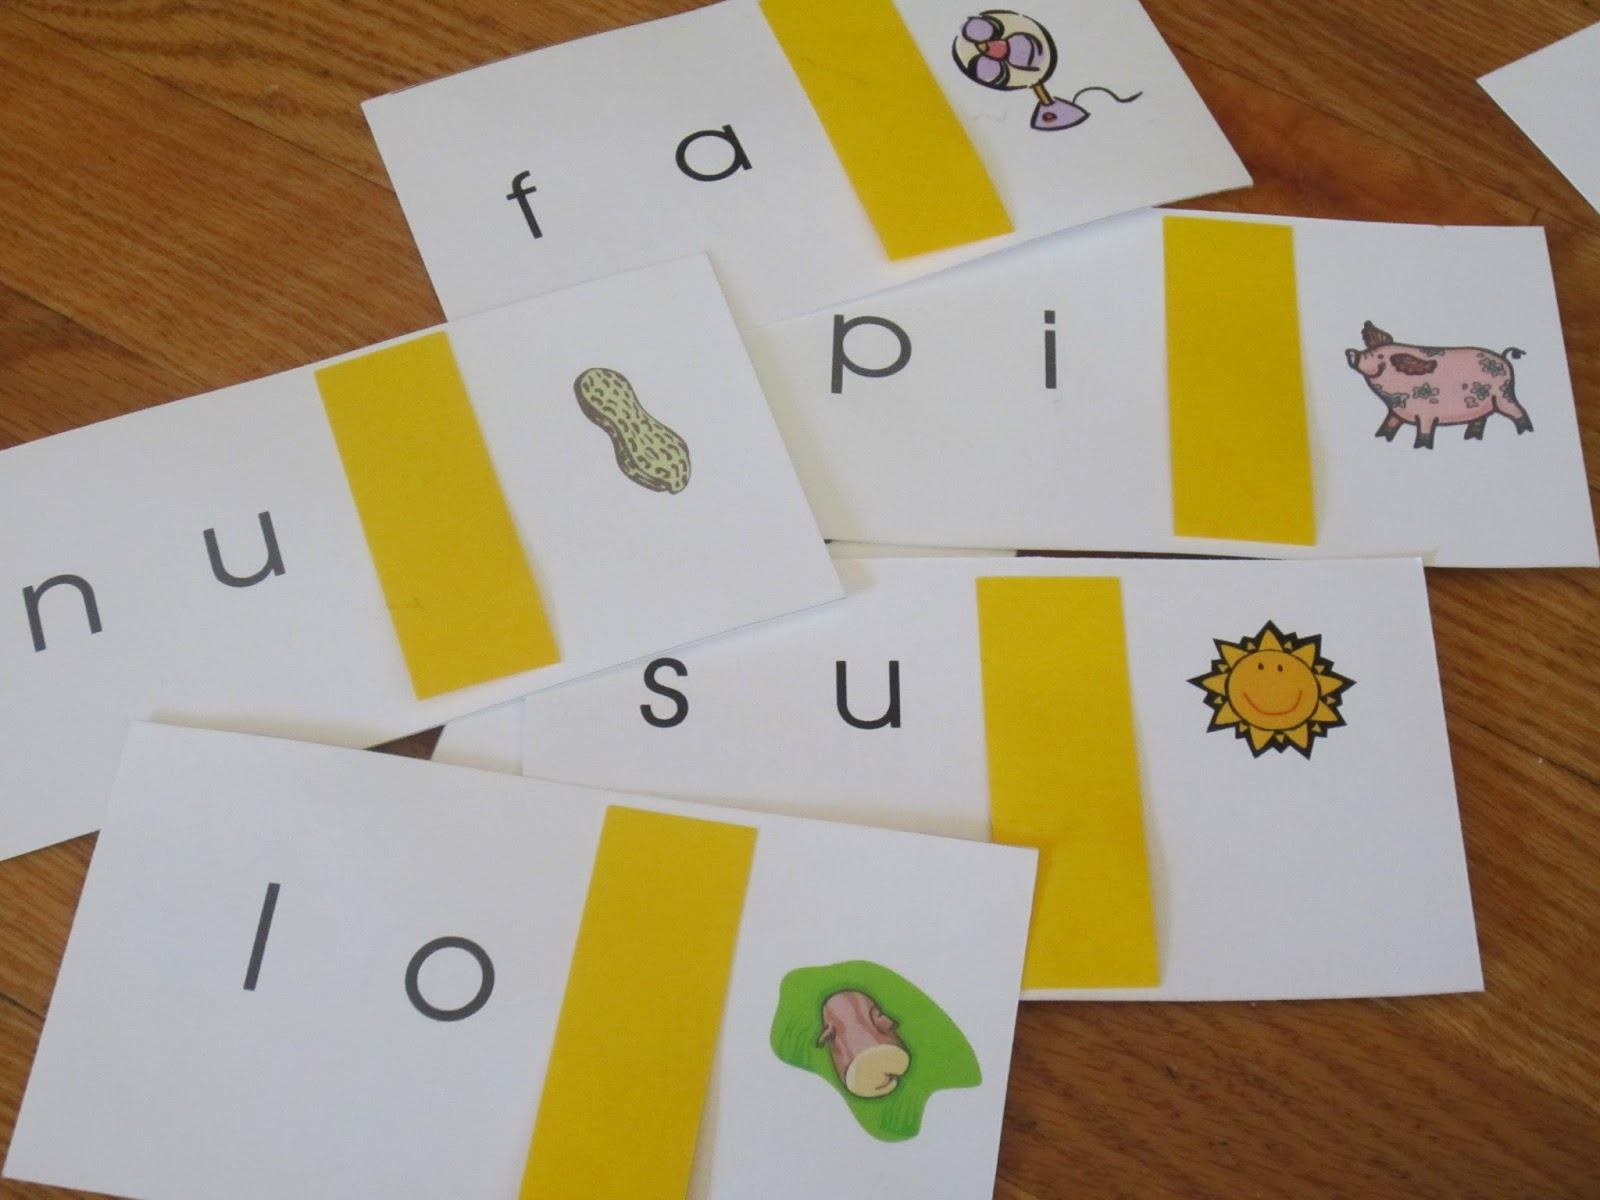 Relentlessly Fun Deceptively Educational Find the Missing End